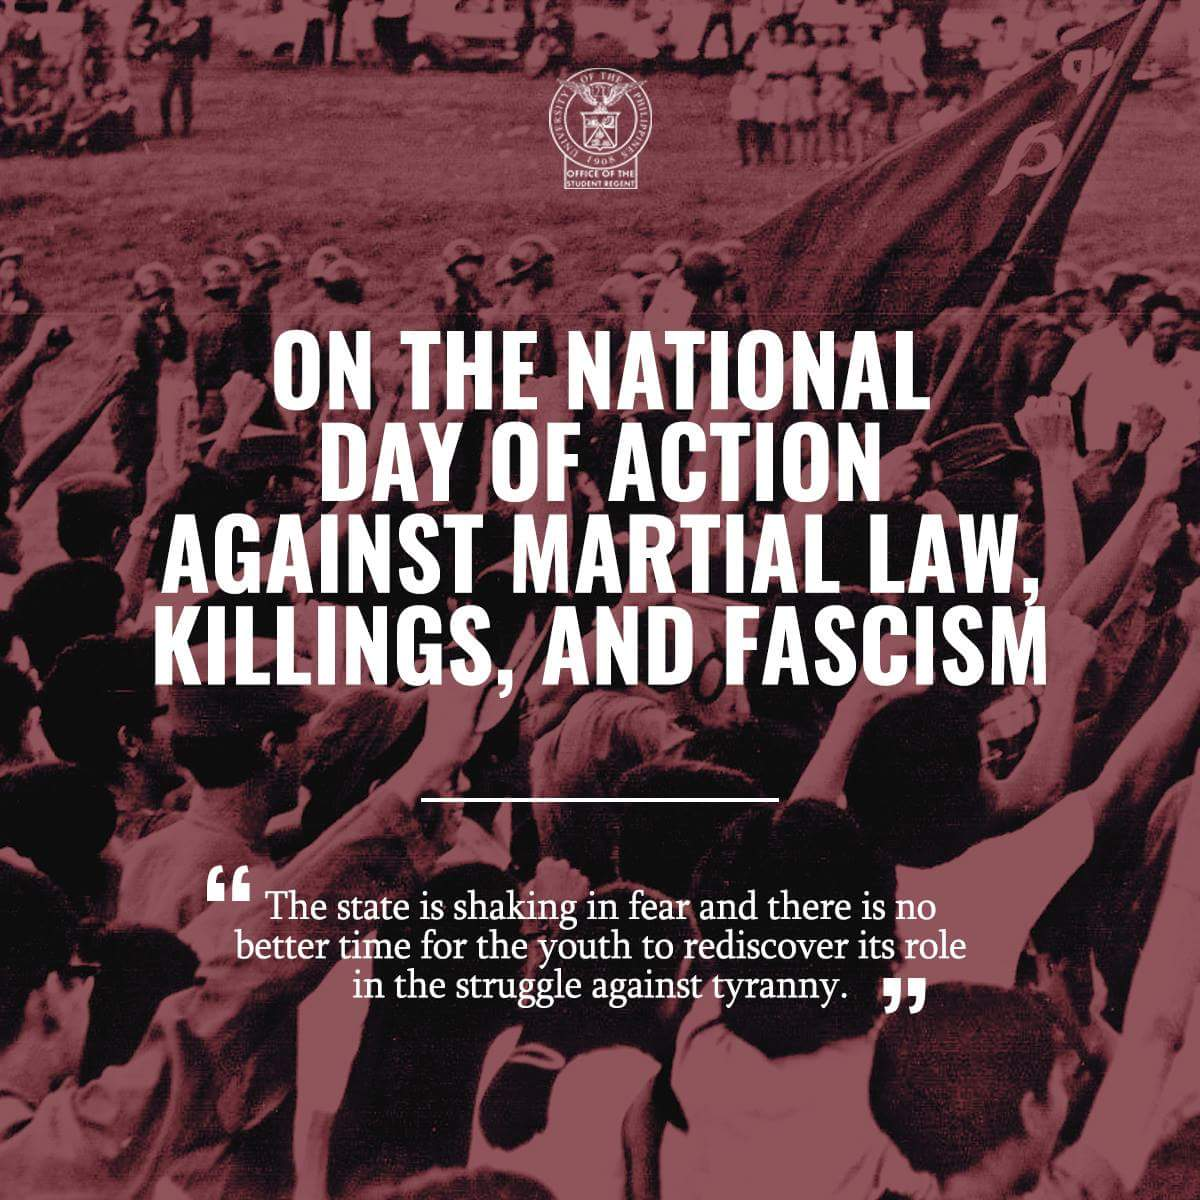 #PressRelease on the national day of action against Martial Law, Killings, and Fascism.  http:// bit.ly/2jNgJcS  &nbsp;    #NoToMartialLaw<br>http://pic.twitter.com/zTOGjf5sKo